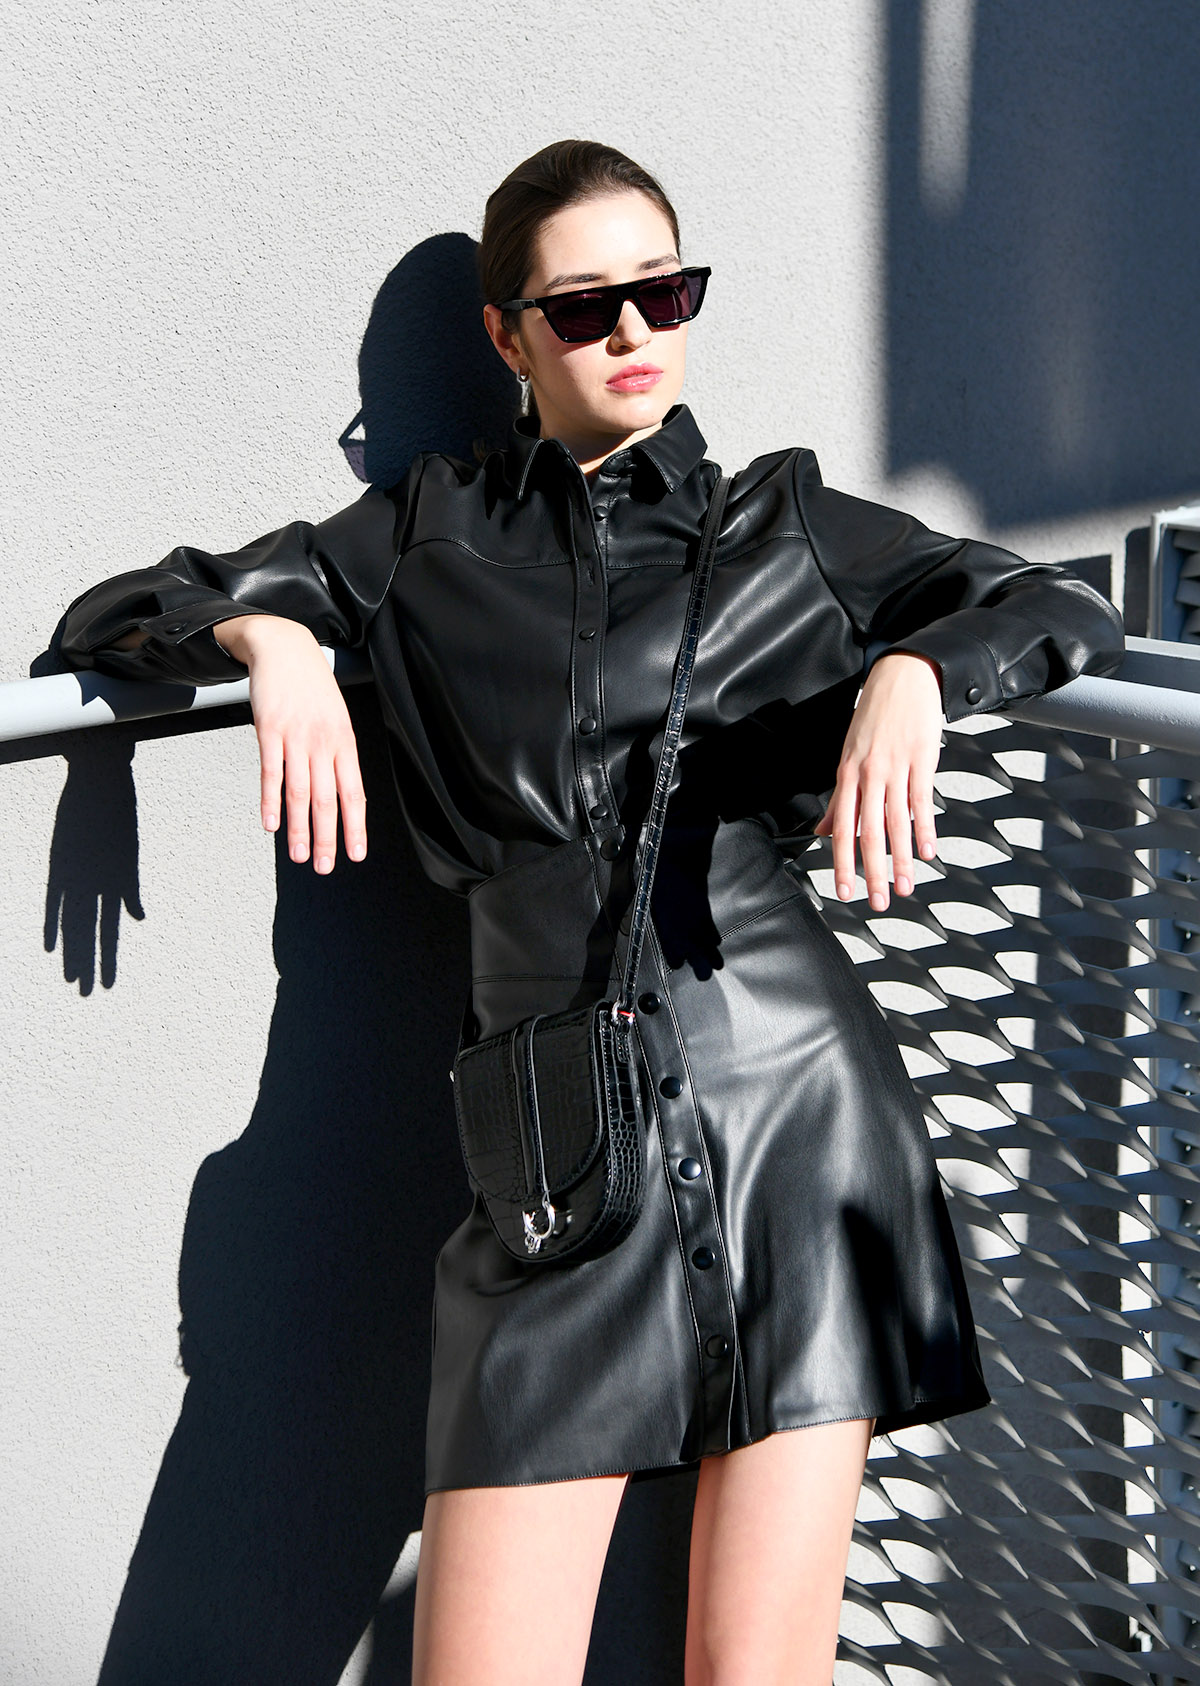 Extravagant editorijal: All black everything